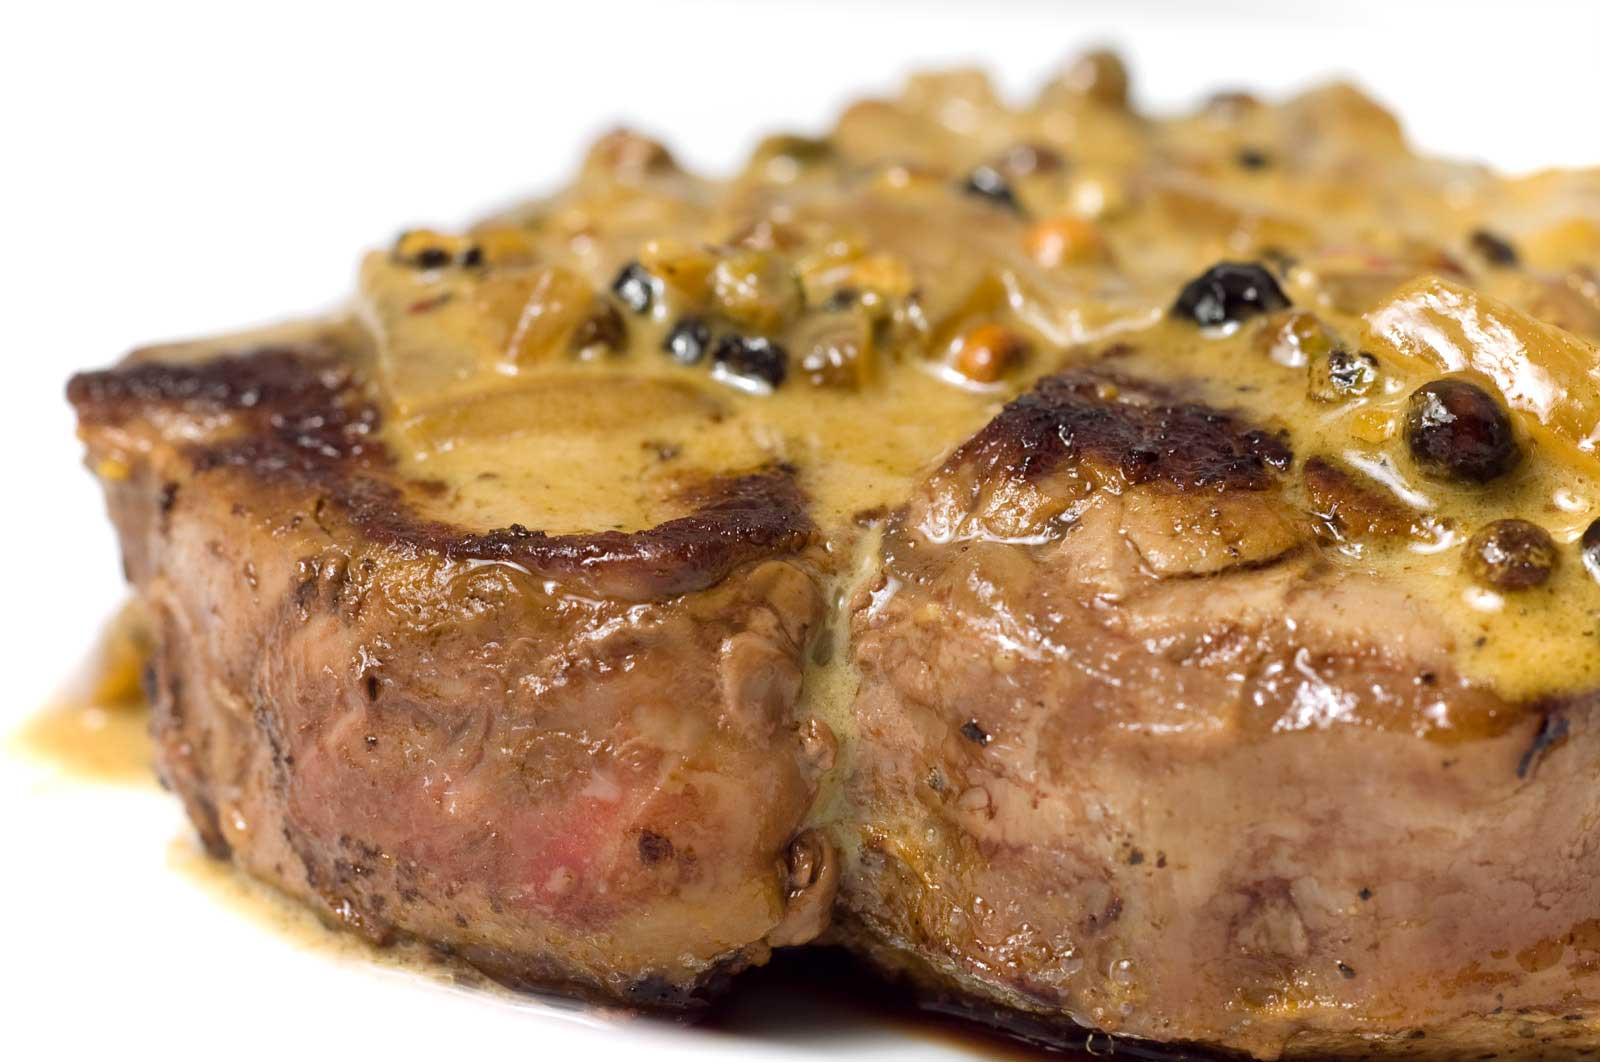 ... -peppercorn-crusted-filet-mignon-with-balsamic-red-wine-sauce.html